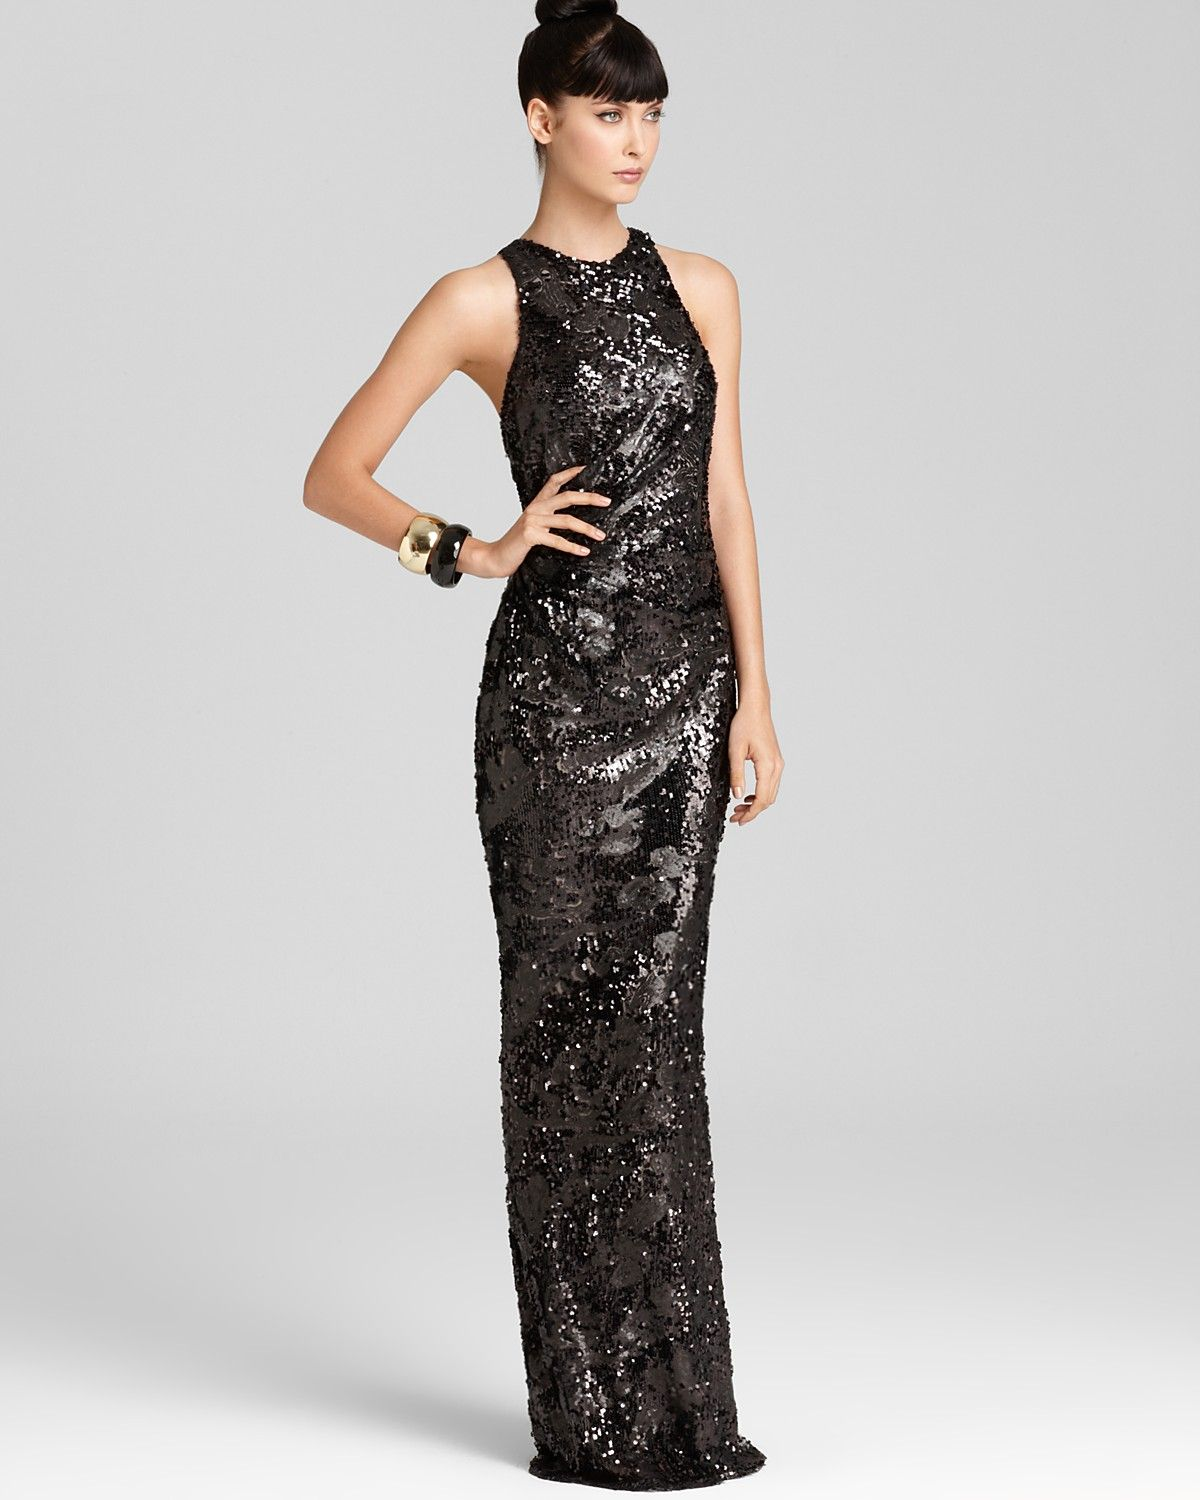 David Meister Embellished Gown - Sleeveless High Neck ...